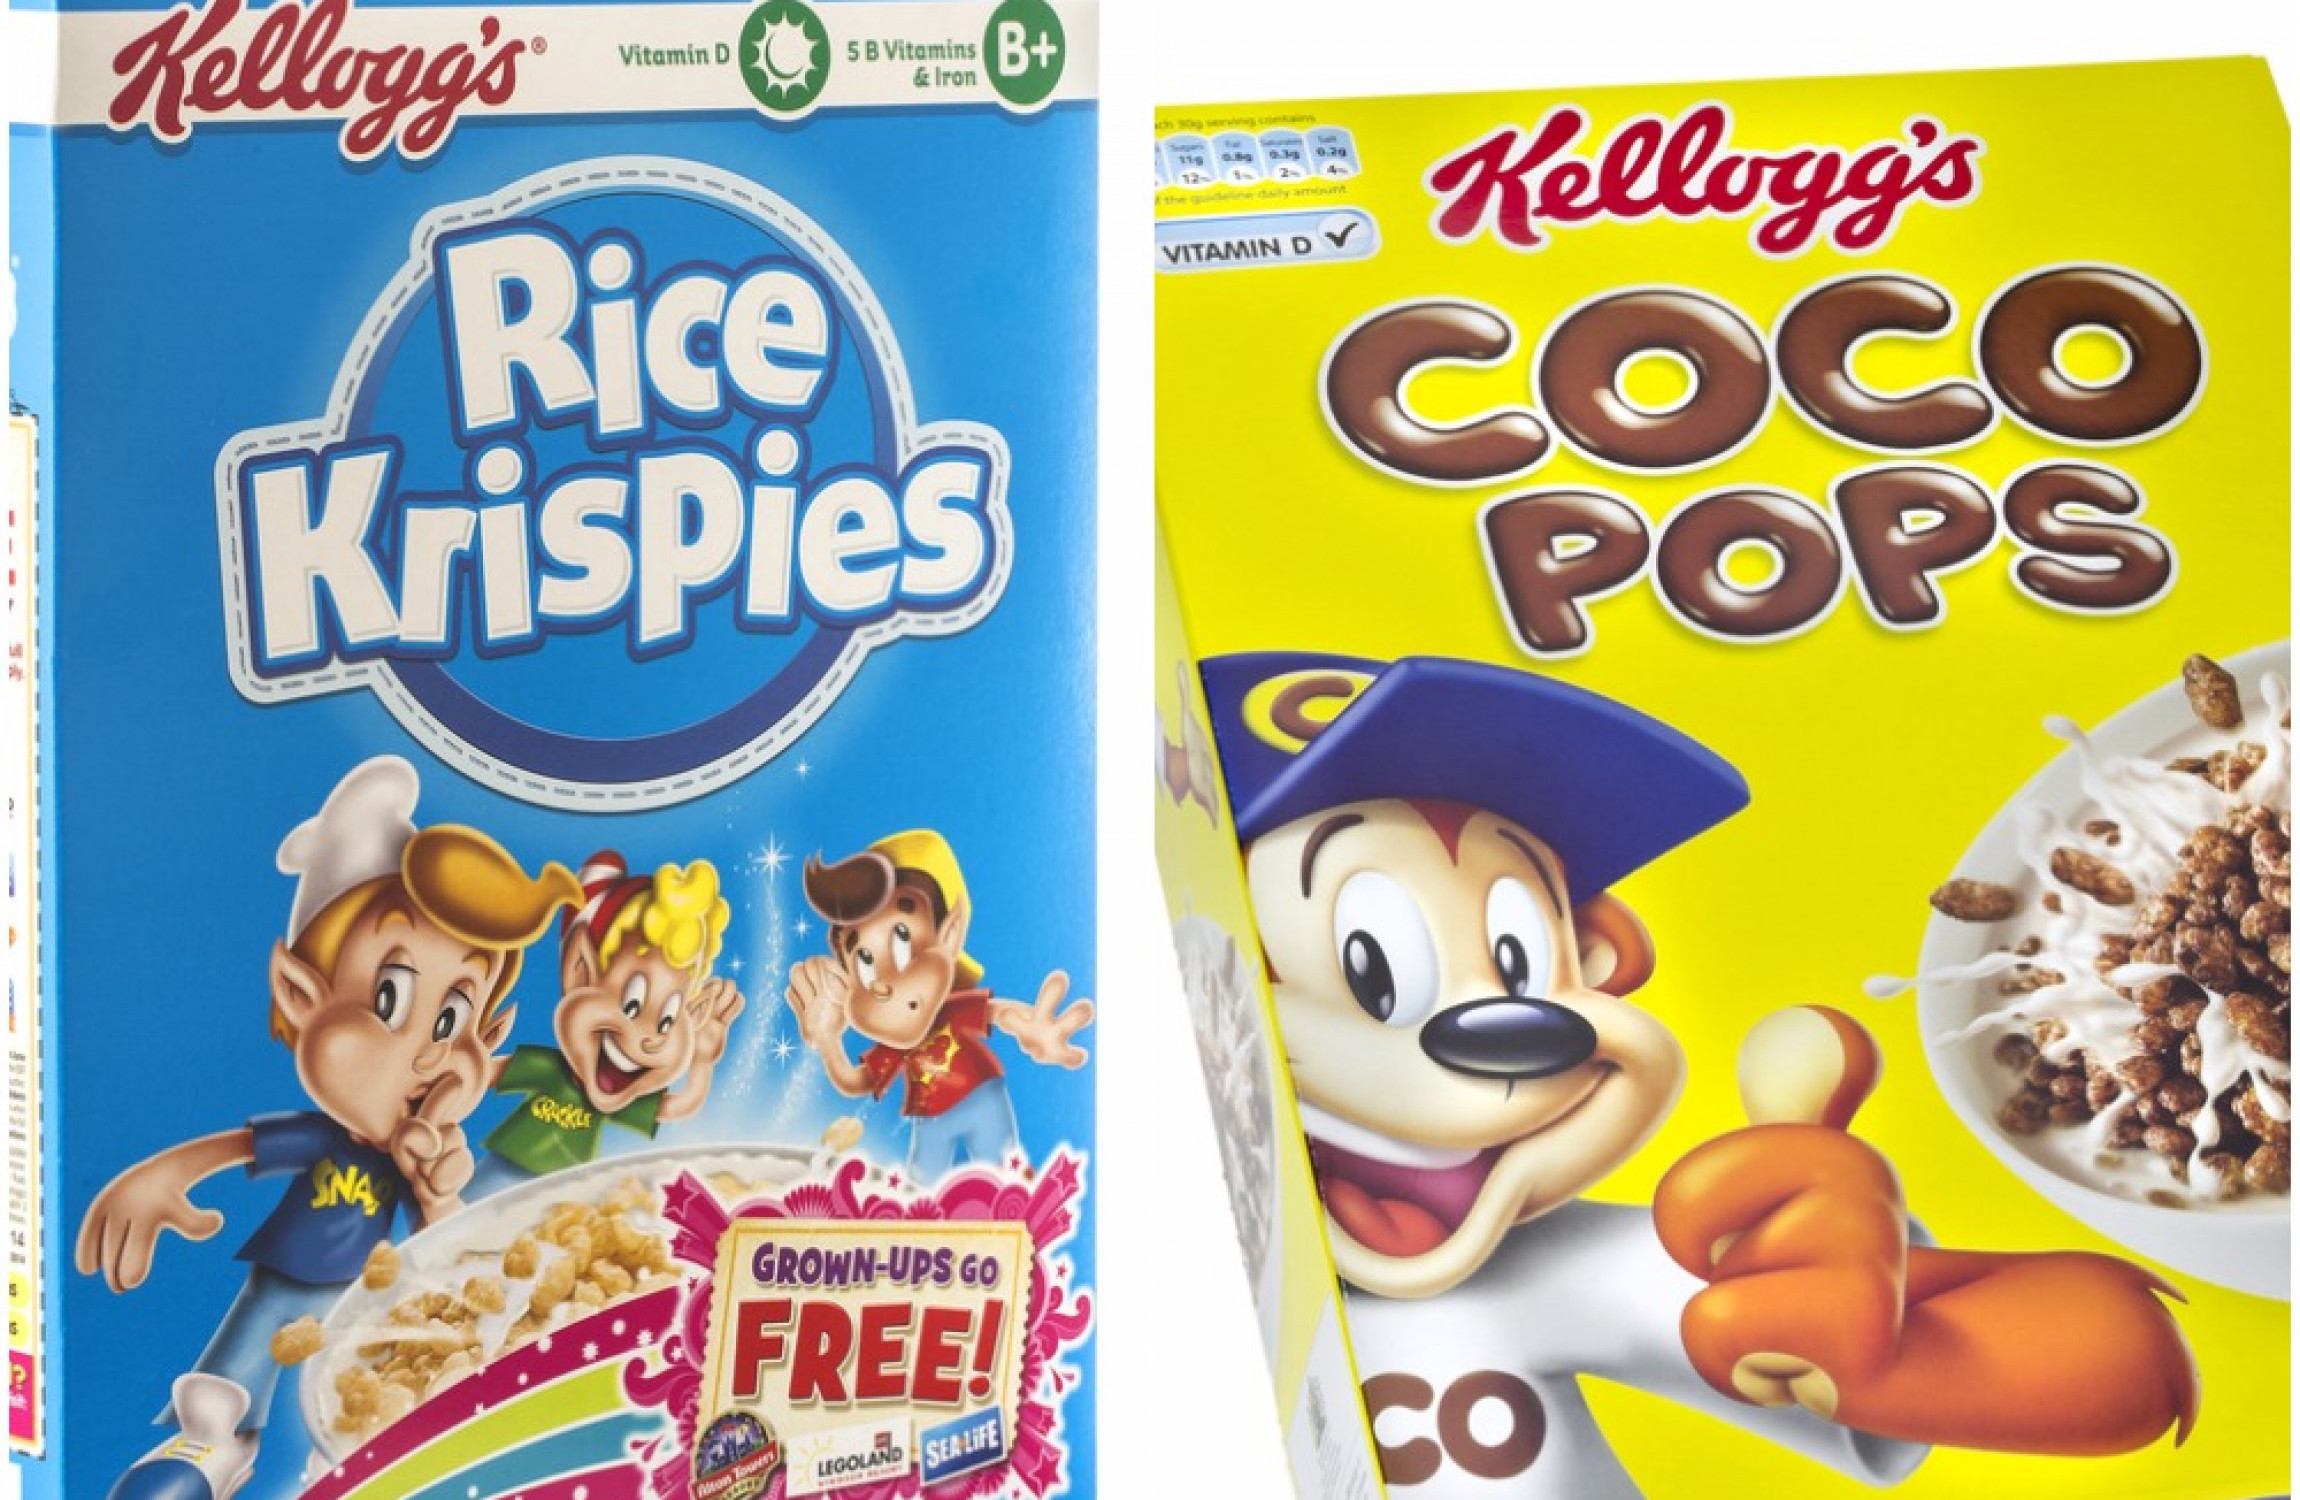 Coco Pops The Daily Edge